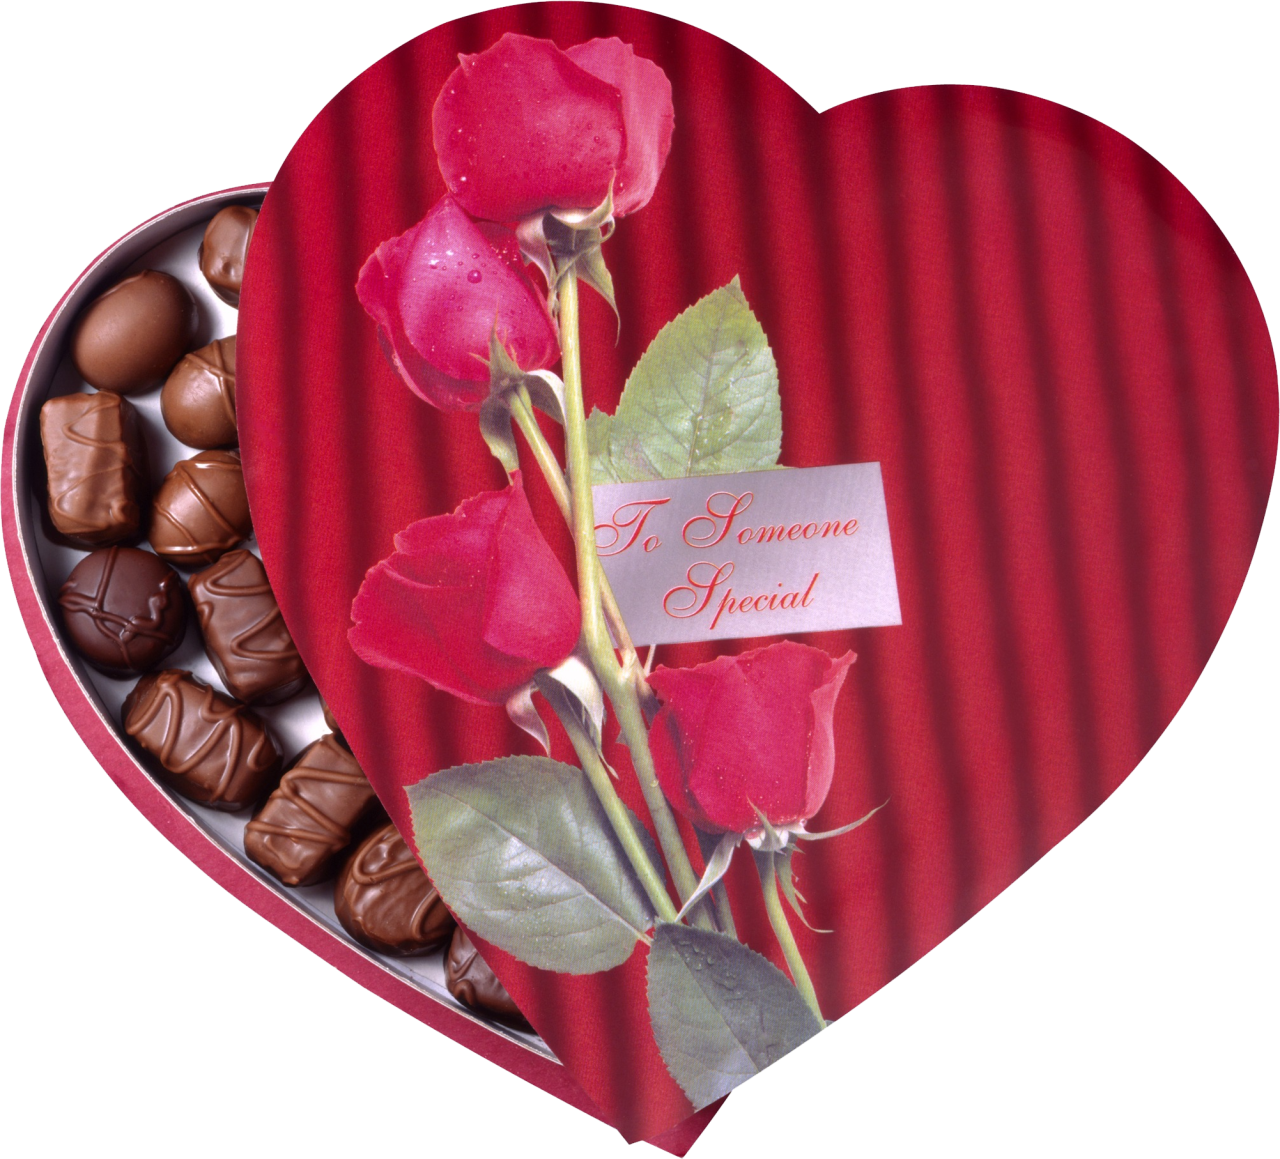 Heart-shaped clipart chocolate box Roses Heart Shaped Chocolate Heart